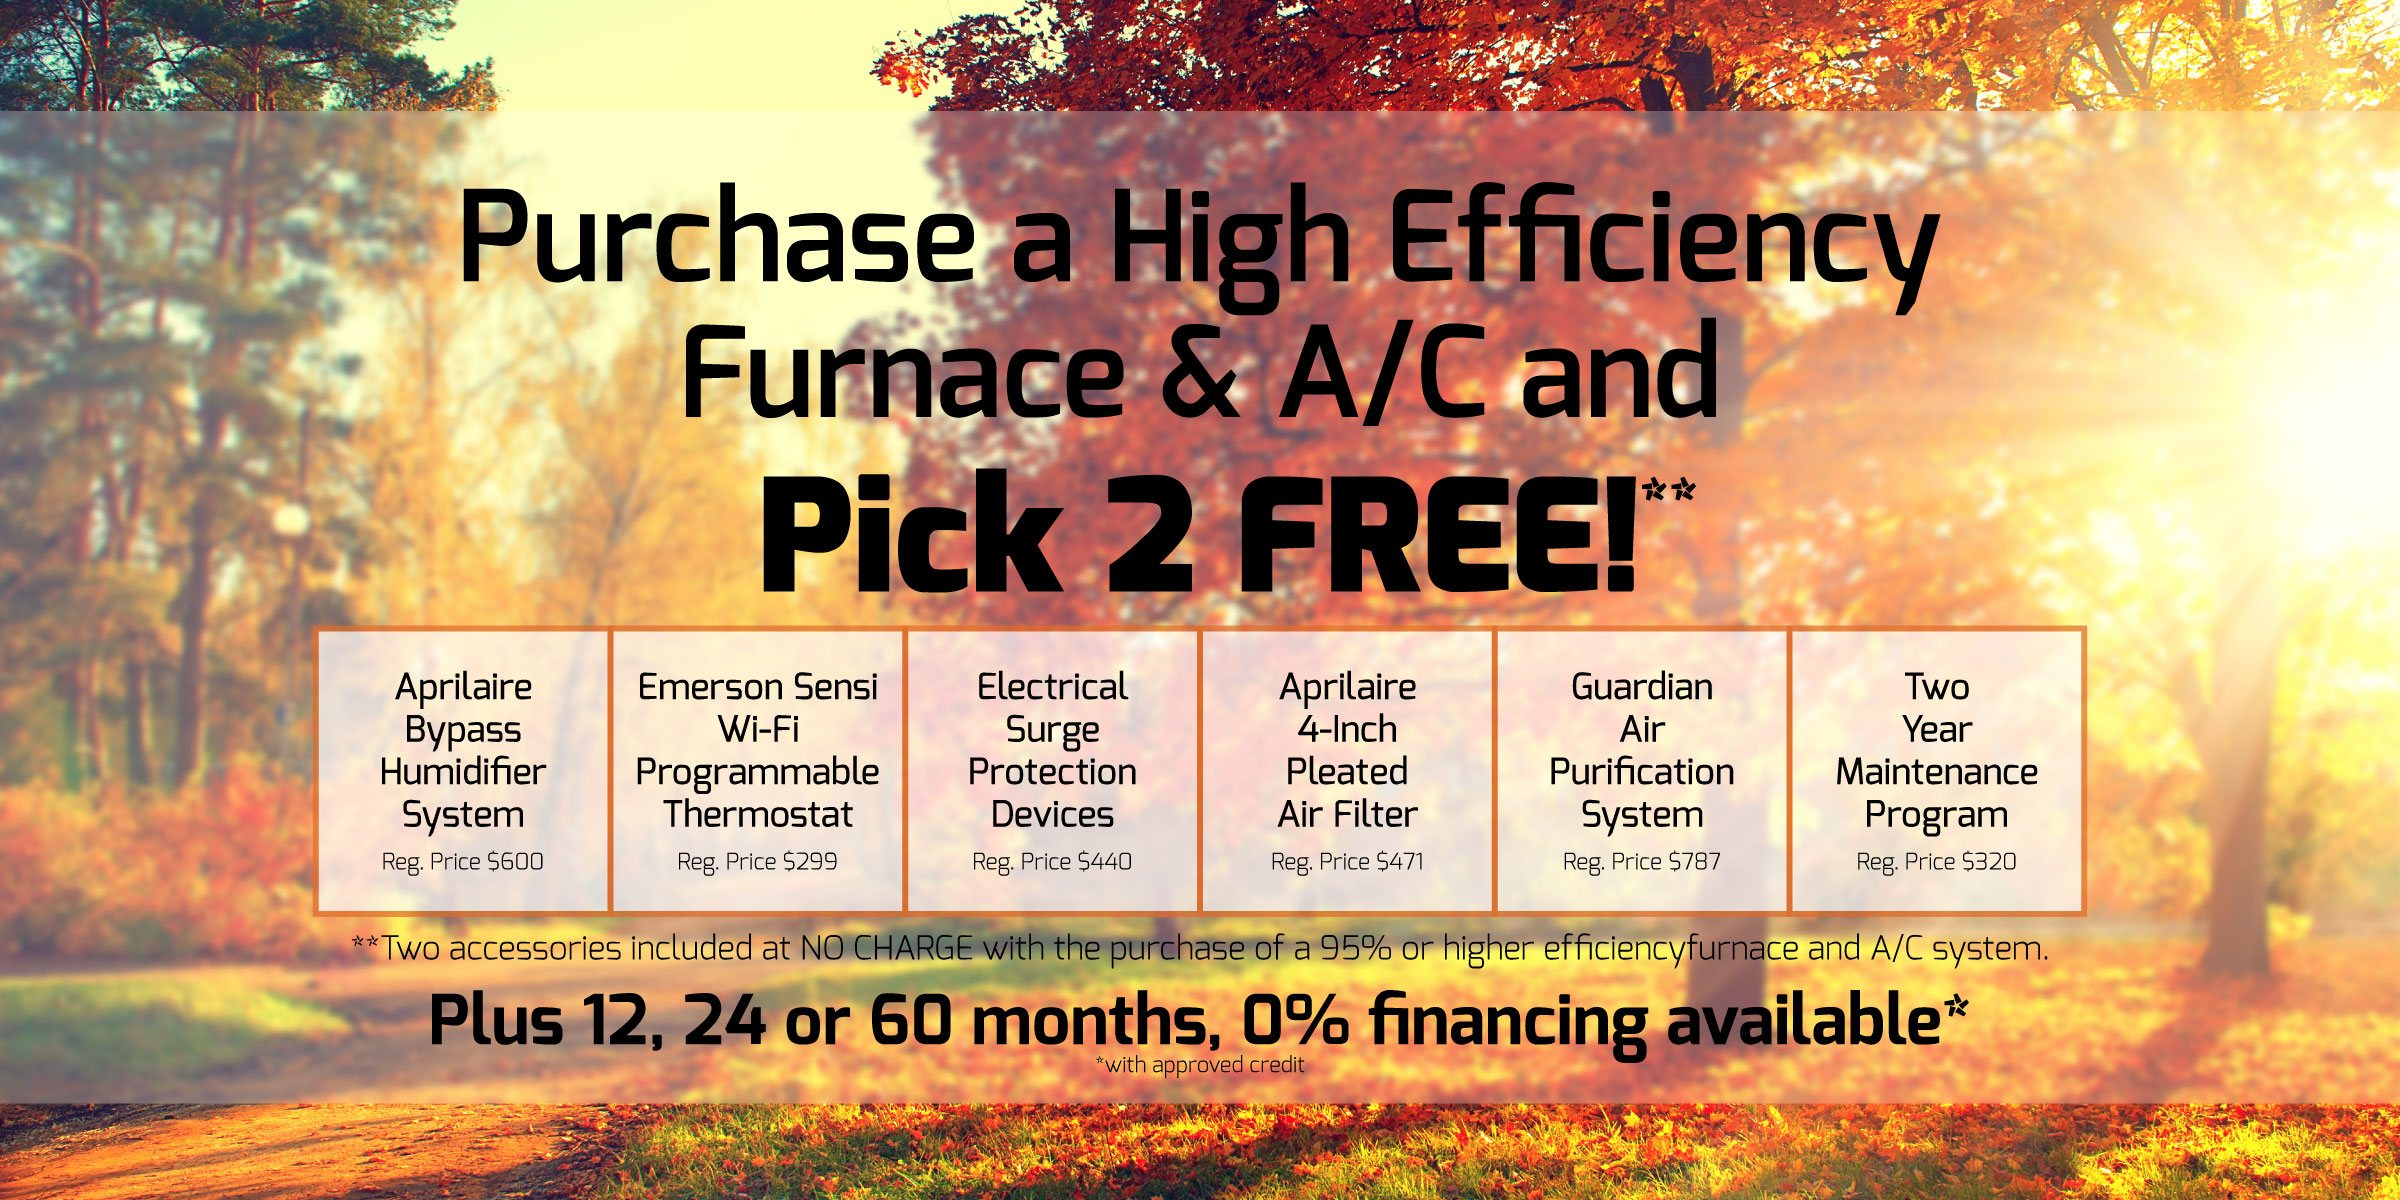 Pick 2 Accessories with a 95% or higher effciency furnace and A/C system!